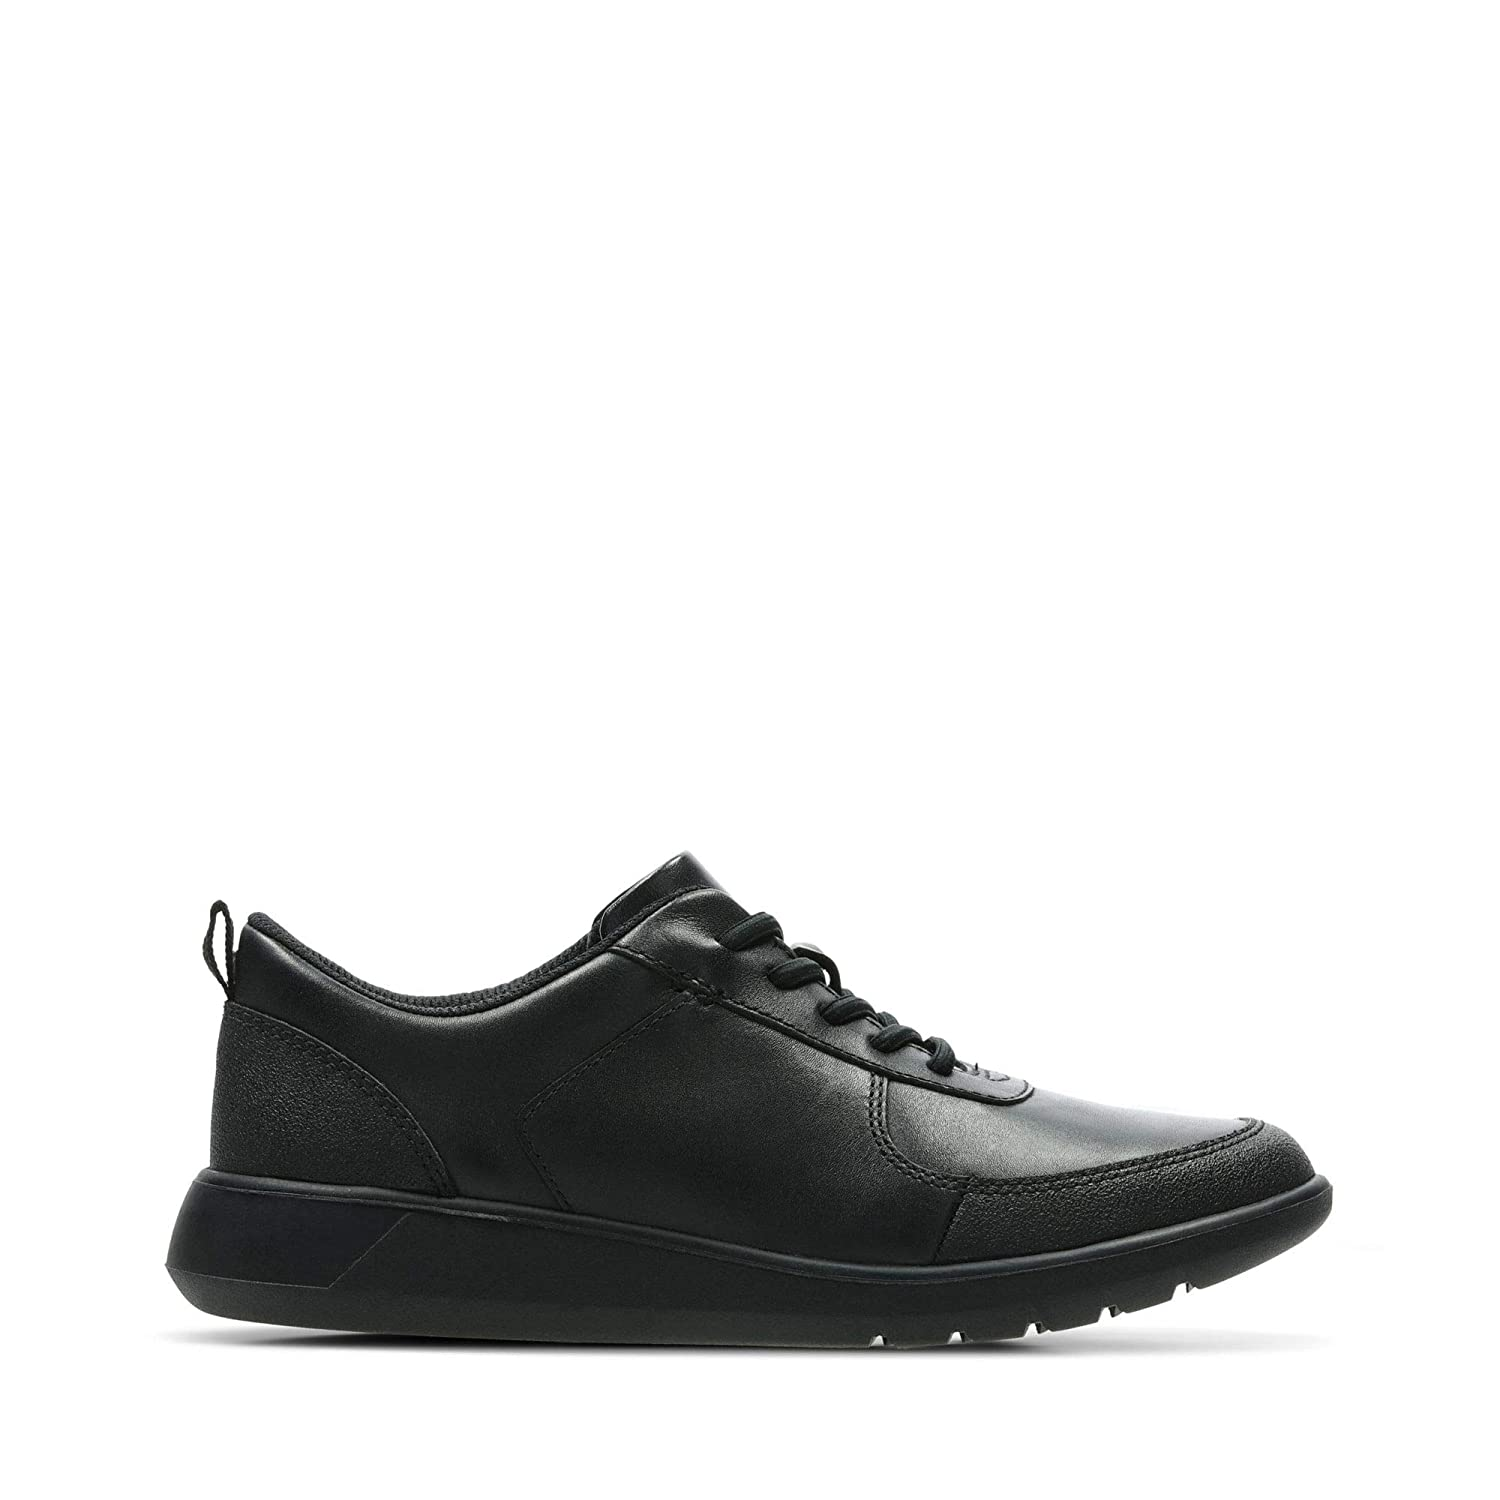 Clarks Scape Street Kid Leather Shoes in Black